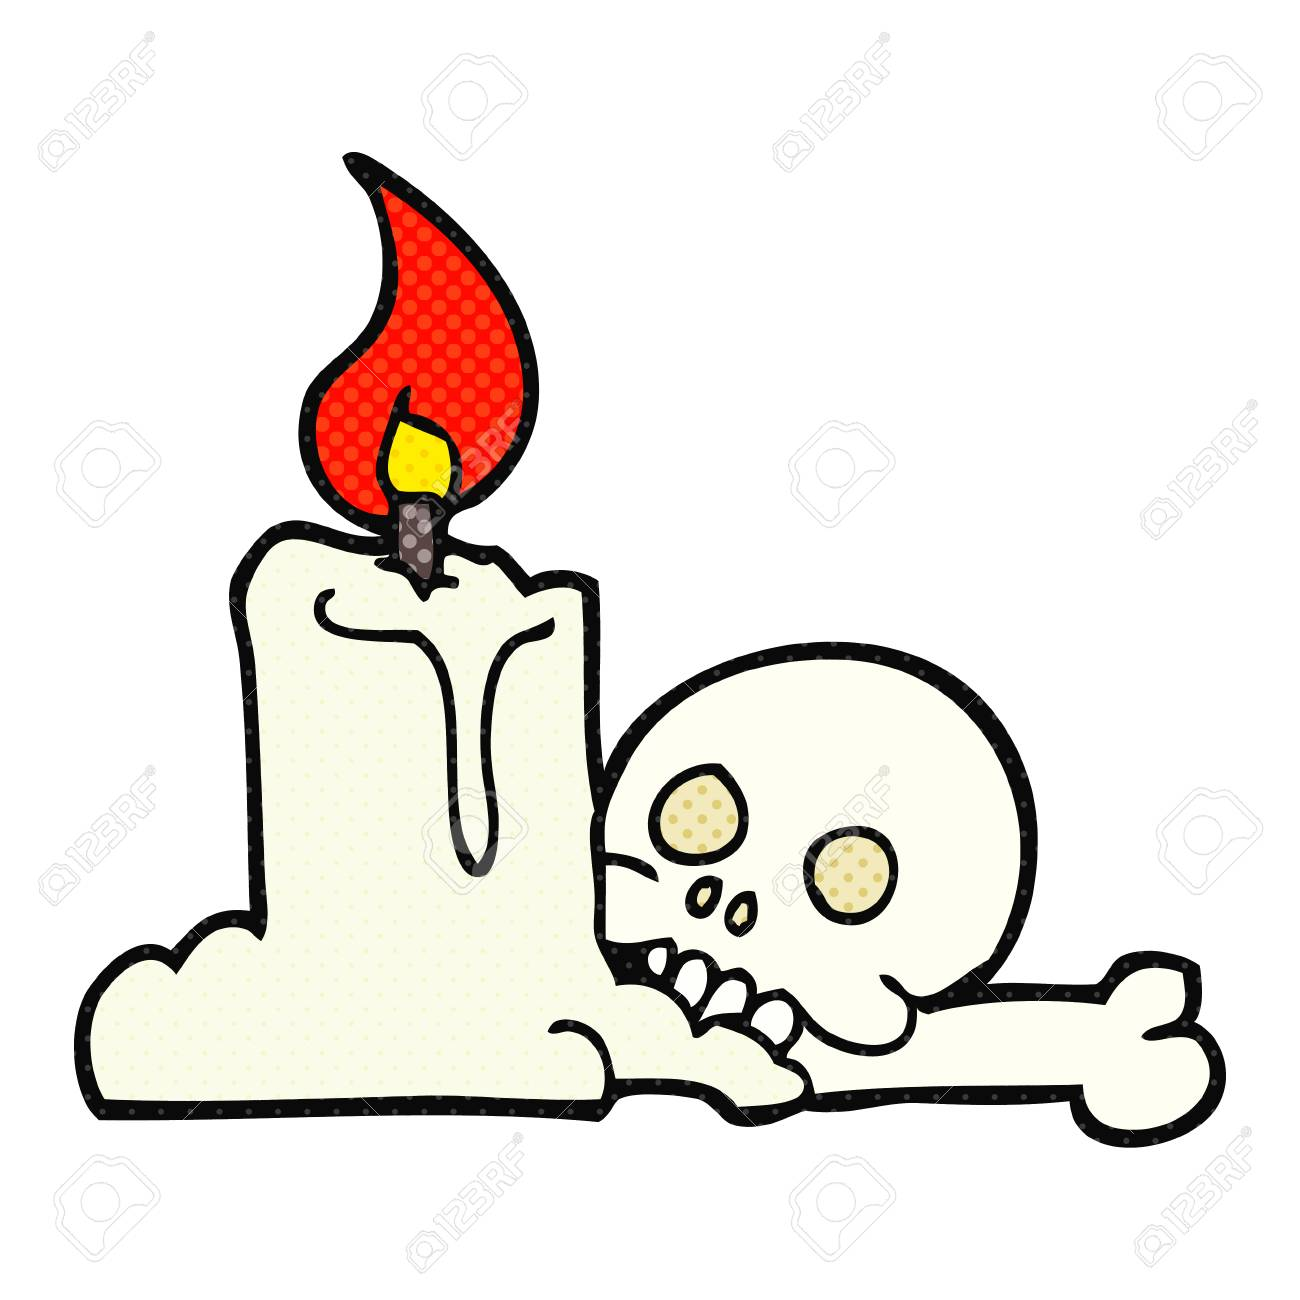 freehand drawn cartoon spooky skull and candle royalty free cliparts rh 123rf com Skeleton Clip Art Ghost Clip Art